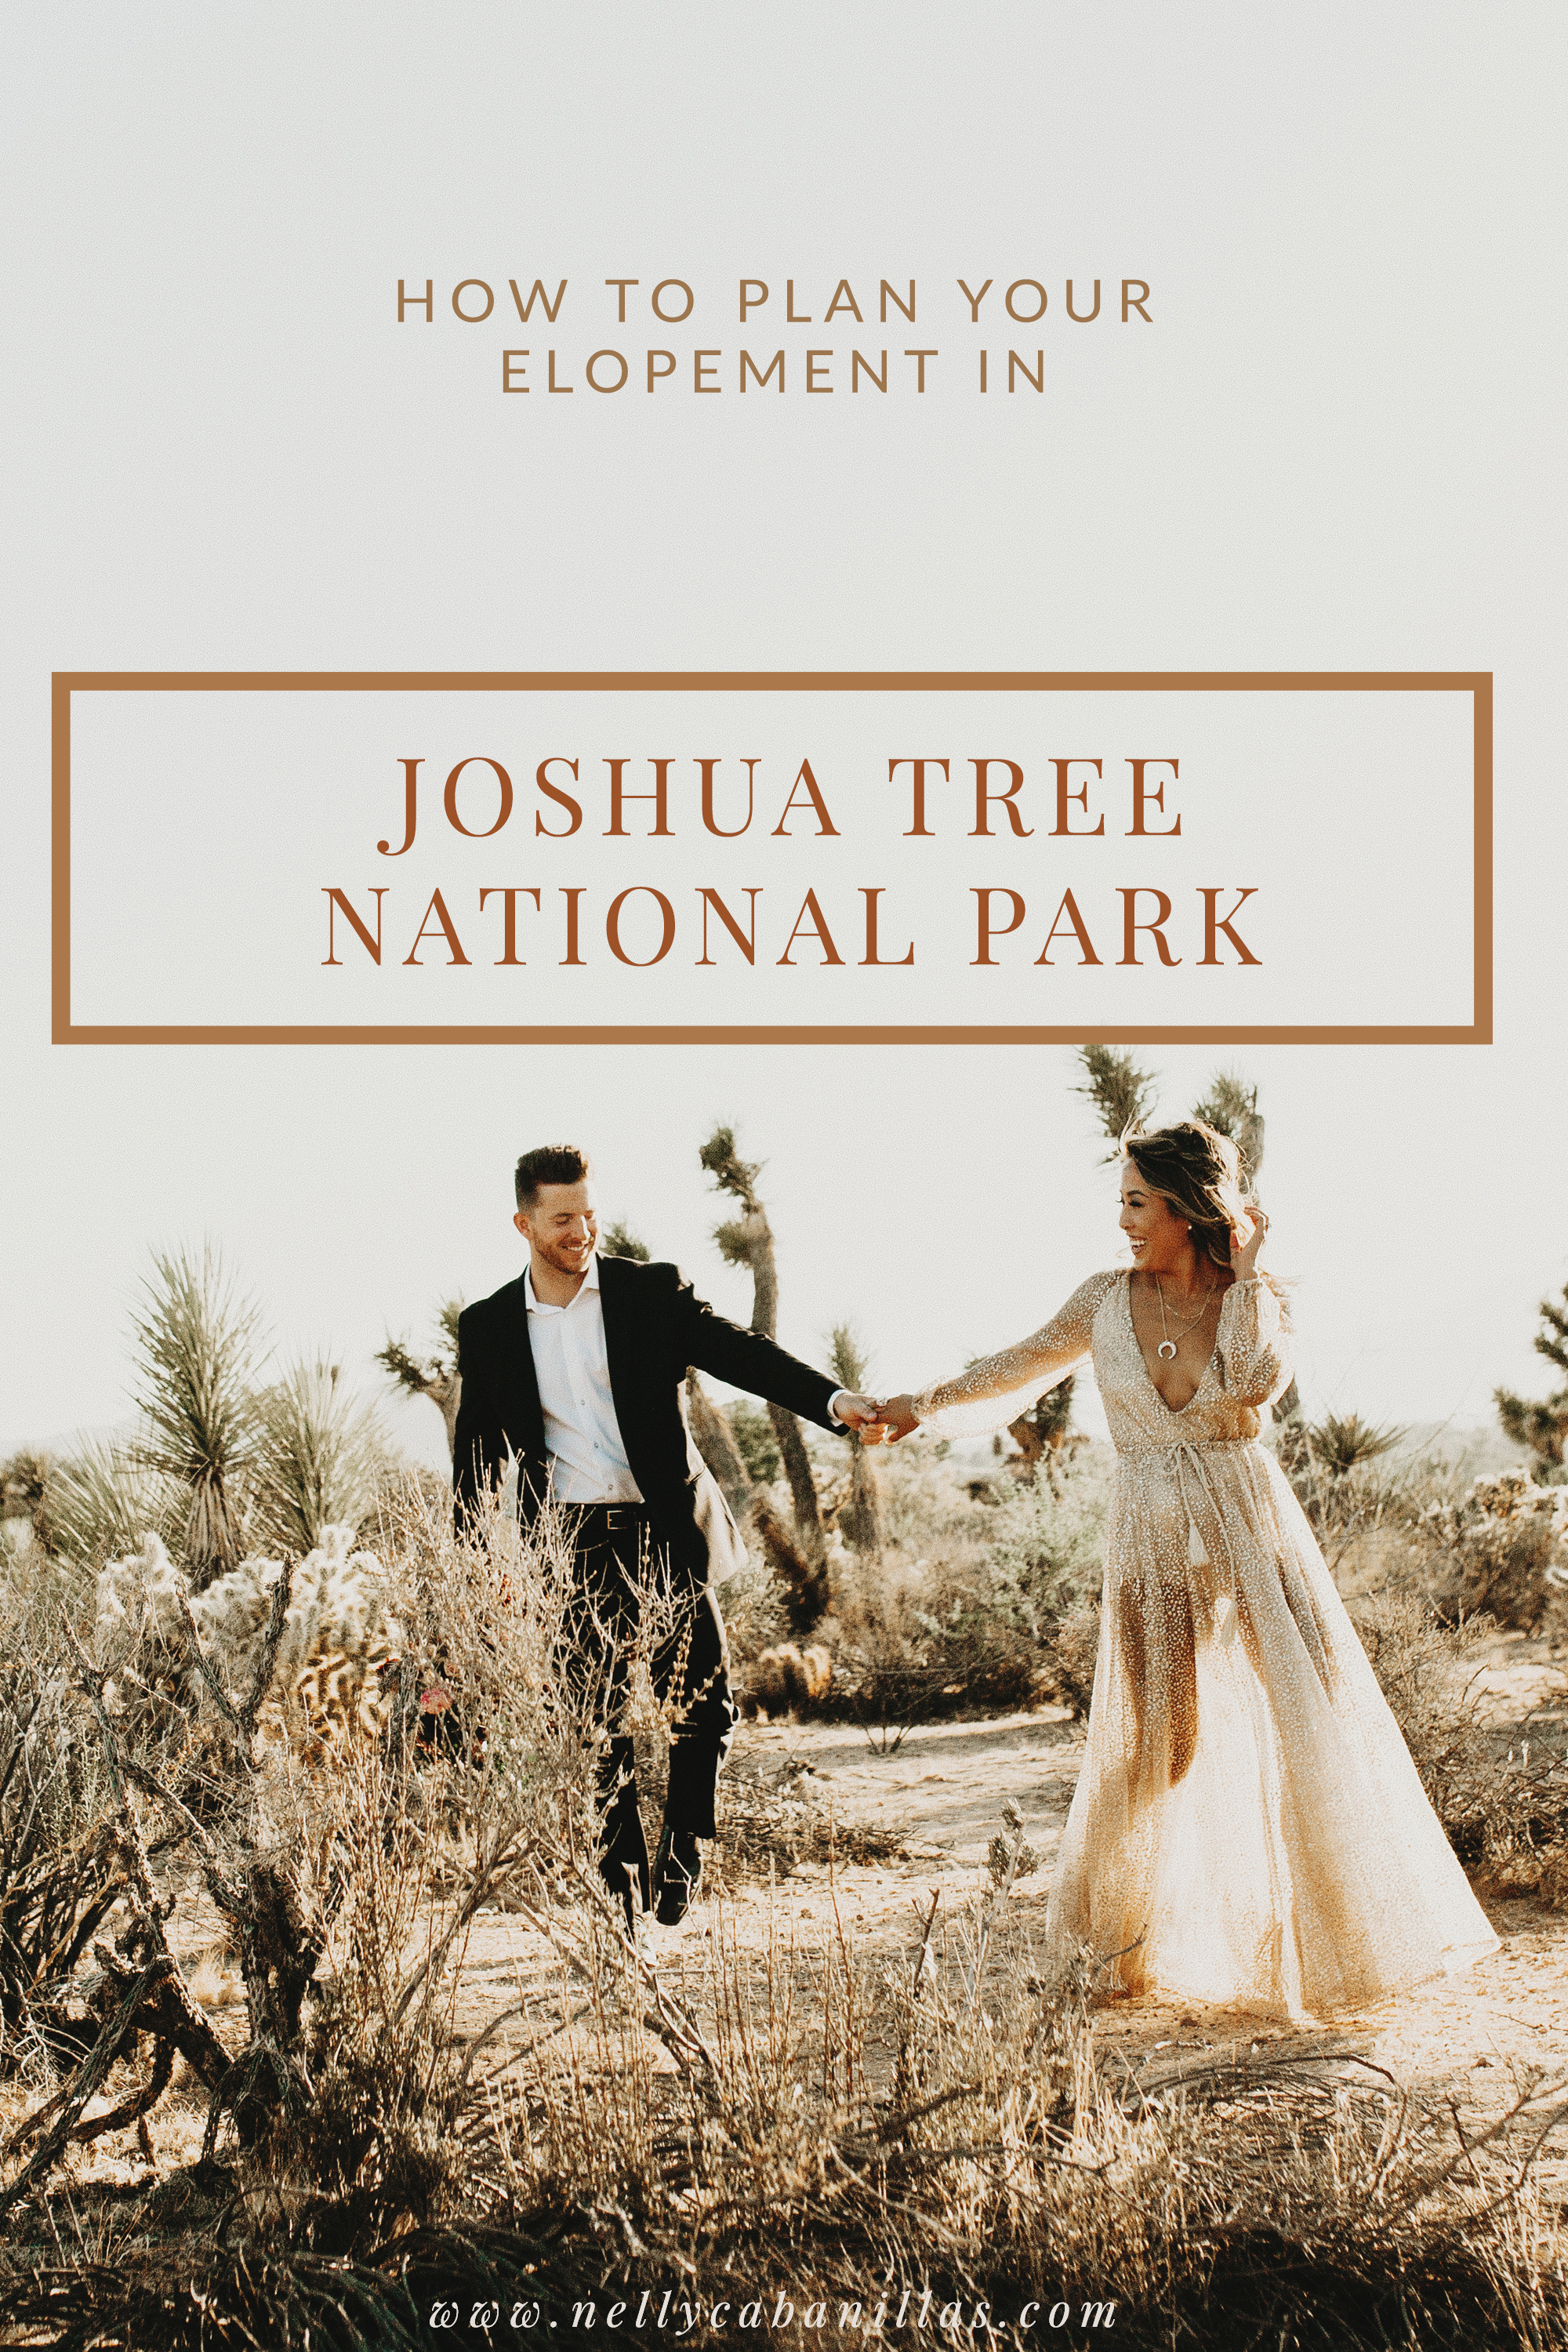 JoshuaTree_Elopement.jpg